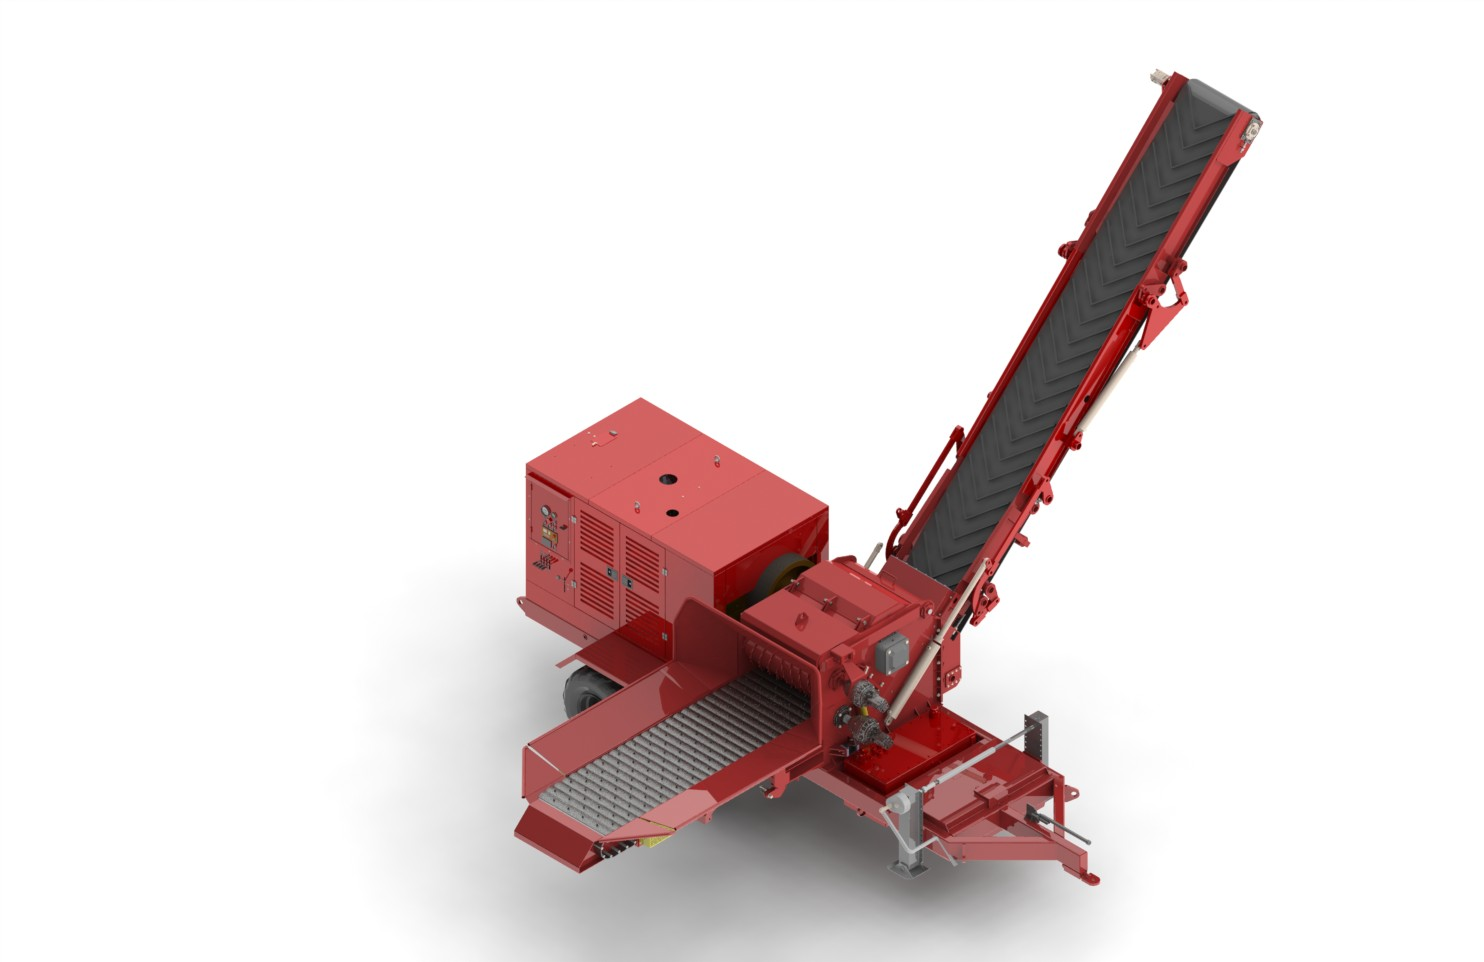 Optional with self-propelled crane and mat - third axis